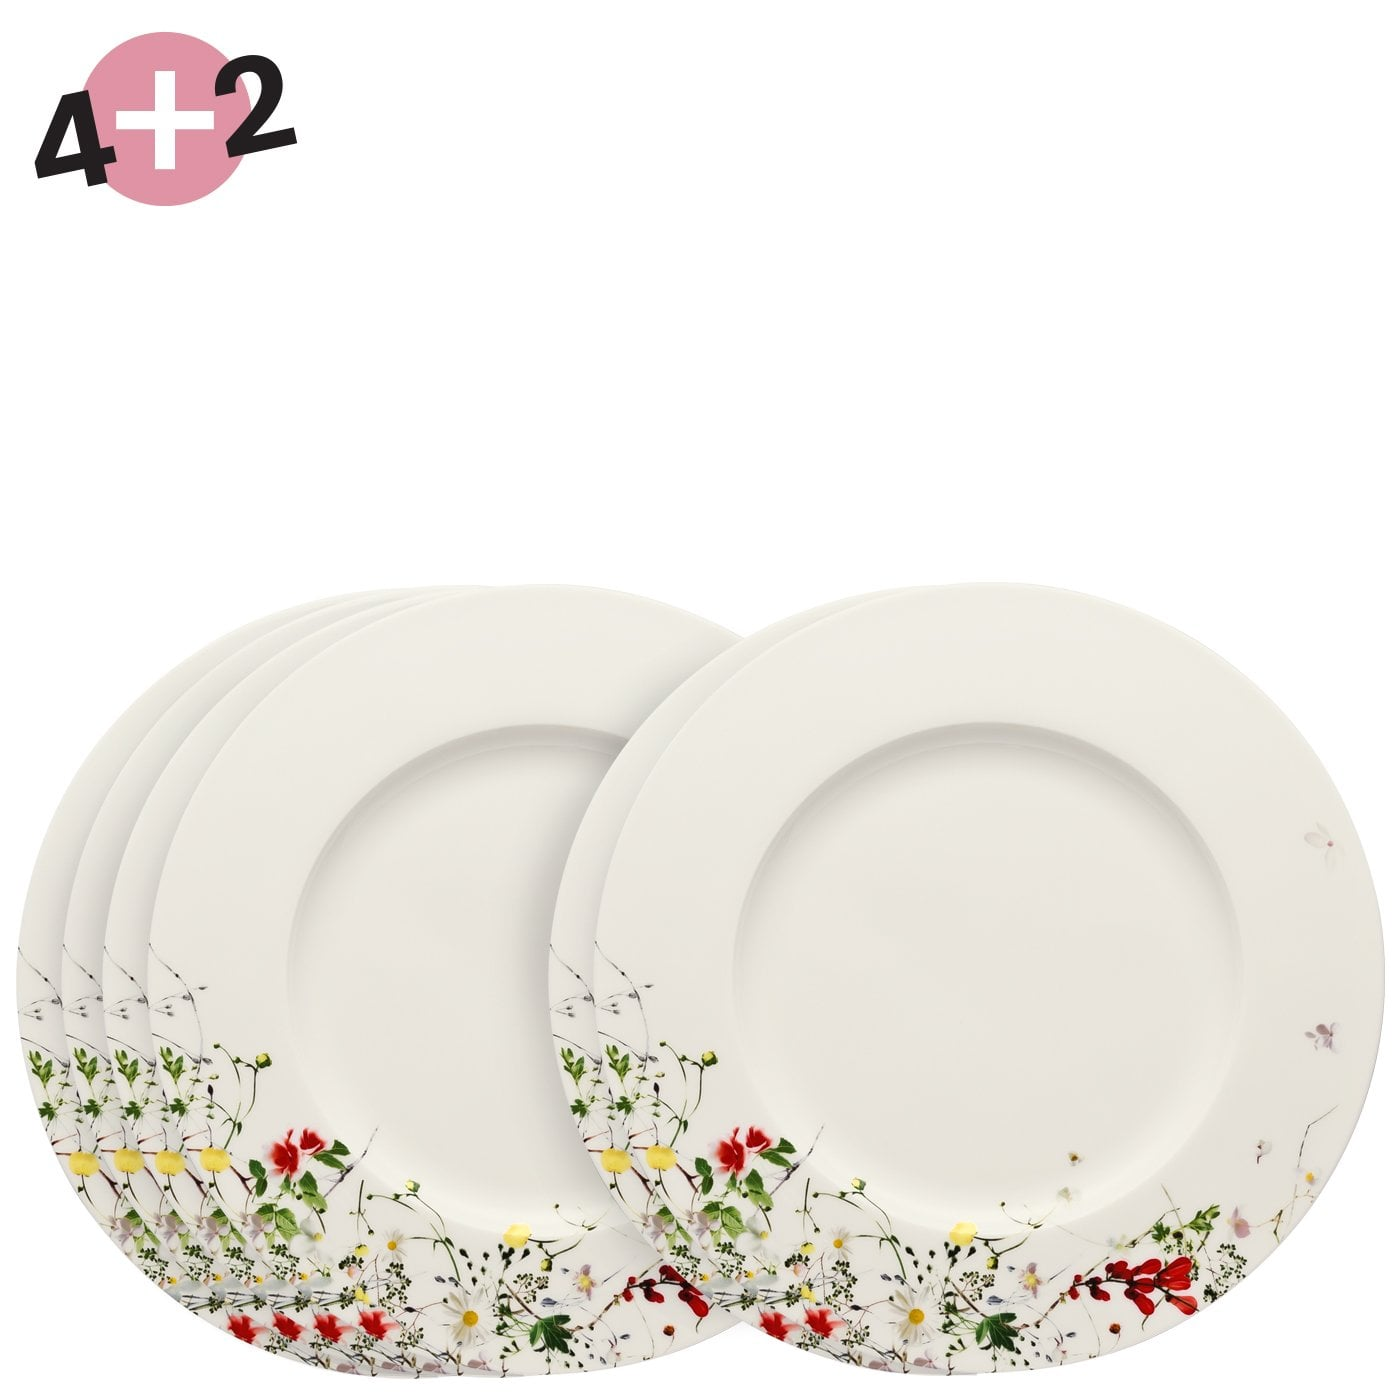 Set of 4 Floral Meadow Drinks Coasters